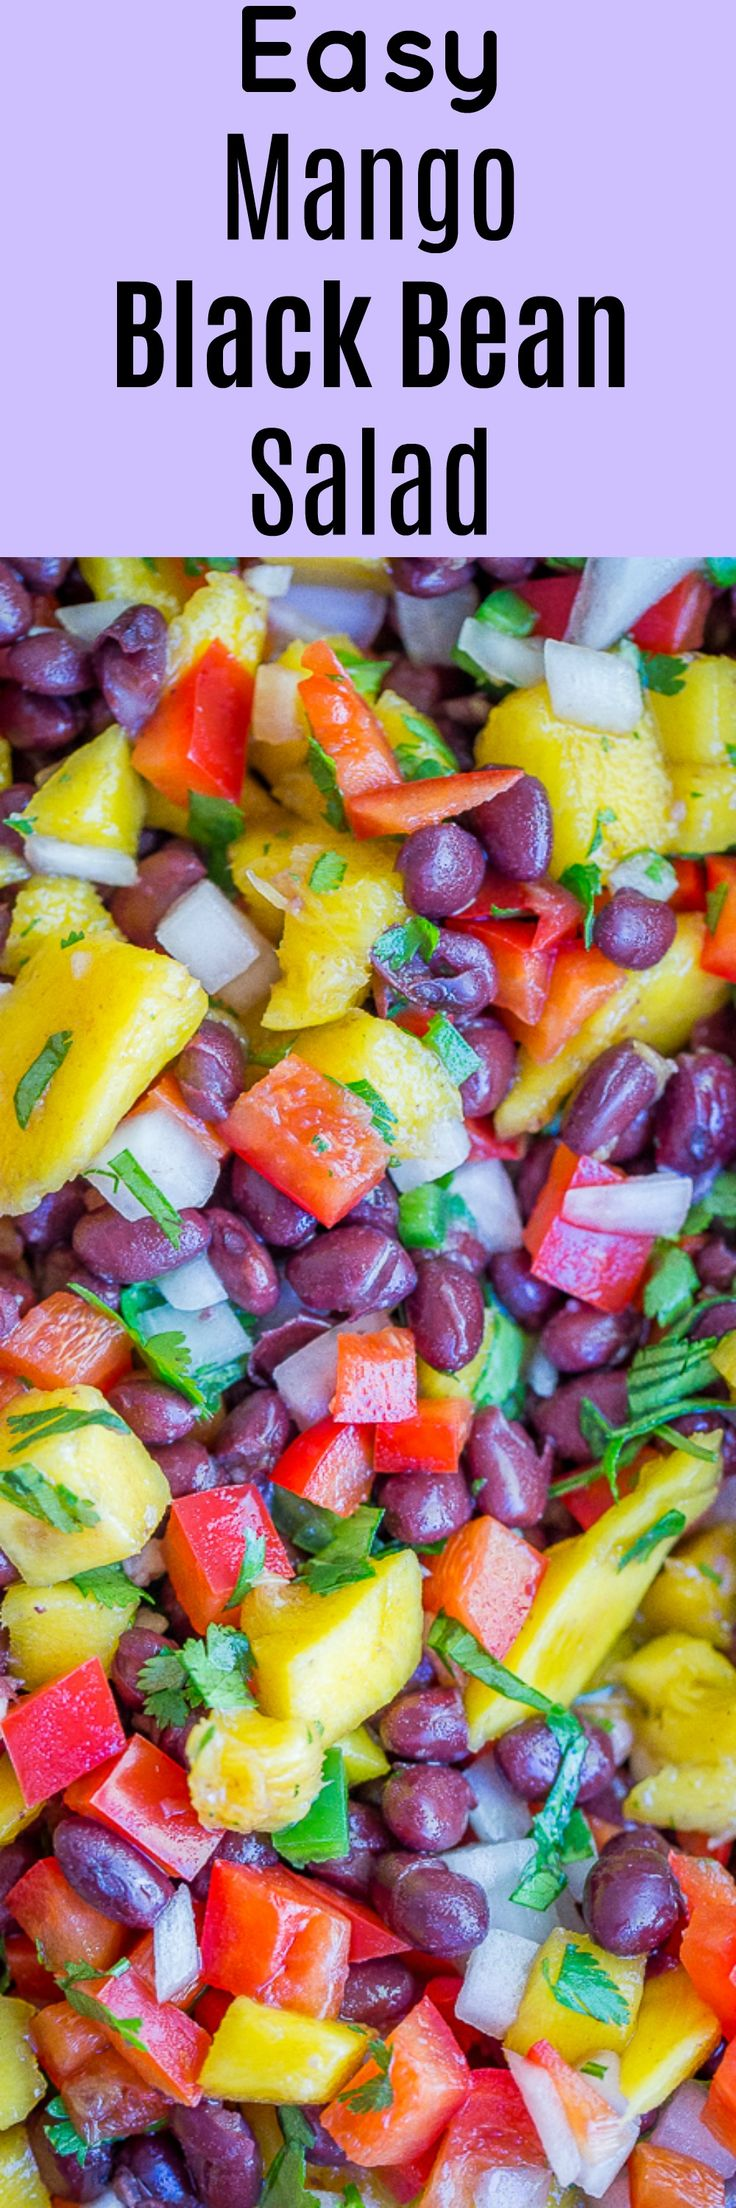 Easy Mango Black Bean Salad - The perfect side dish or condiment!  Great for topping burgers, tacos and salads with!  Gluten free/vegan/summer side